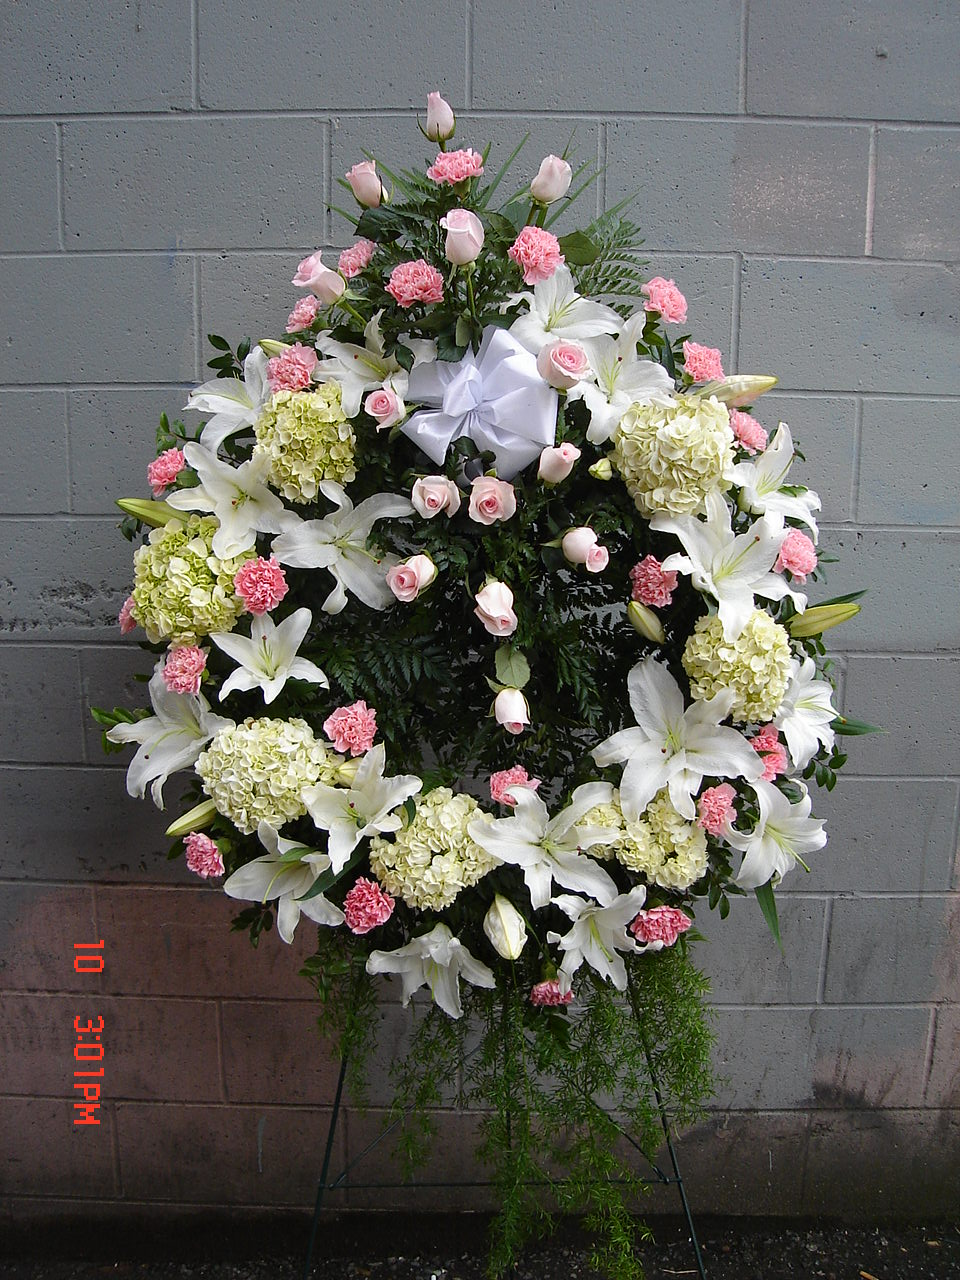 Pink & White Spray within Wreath